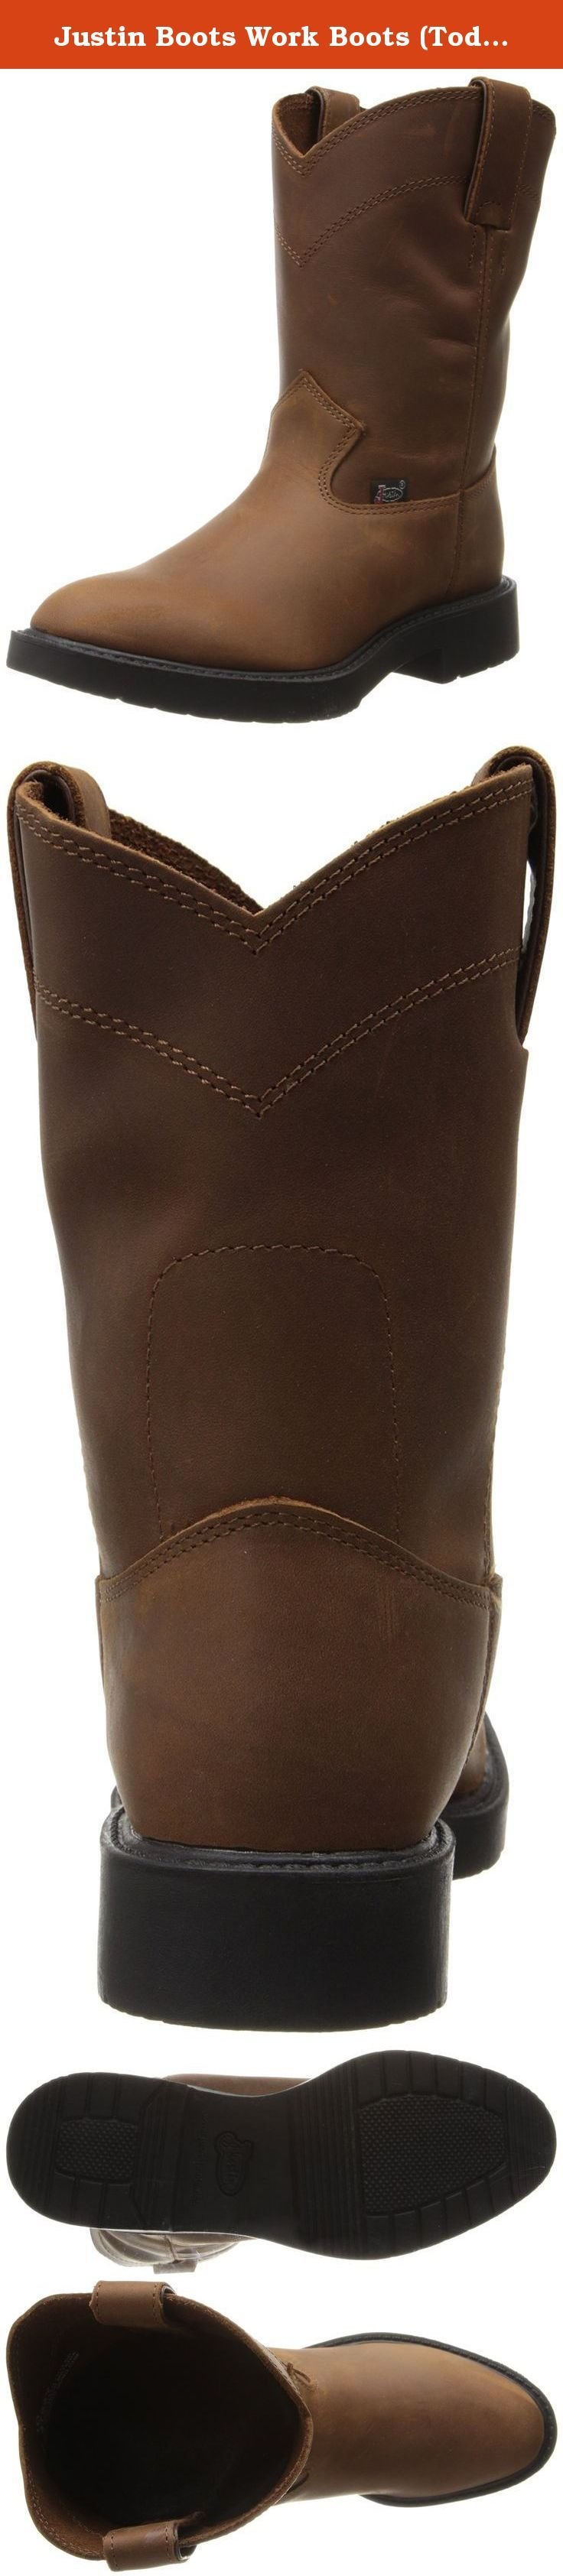 Justin Boots Work Boots (Toddler/Little Kid),Aged Bark,2 D US Little Kid. This pair of Justin work boots is sure to take your young cowpoke far and wide - in comfort. Leather lining. Round toe profile. Single welt construction. Imported.